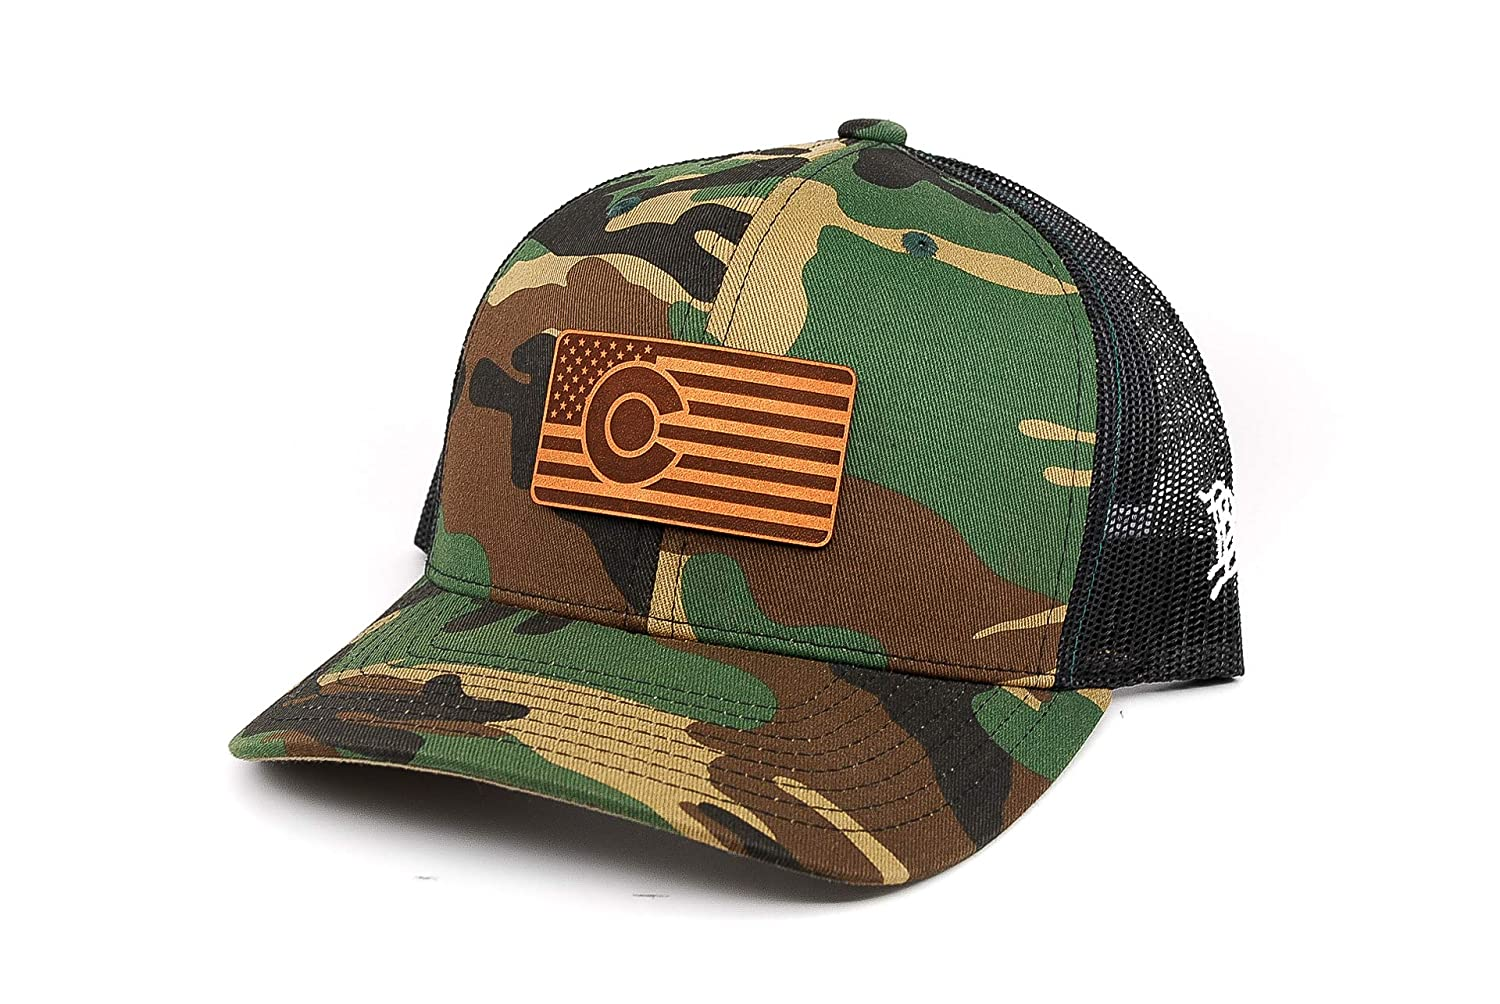 Branded Bills /'Colorado Patriot/' Leather Patch Hat Curved Trucker OSFA//Camo